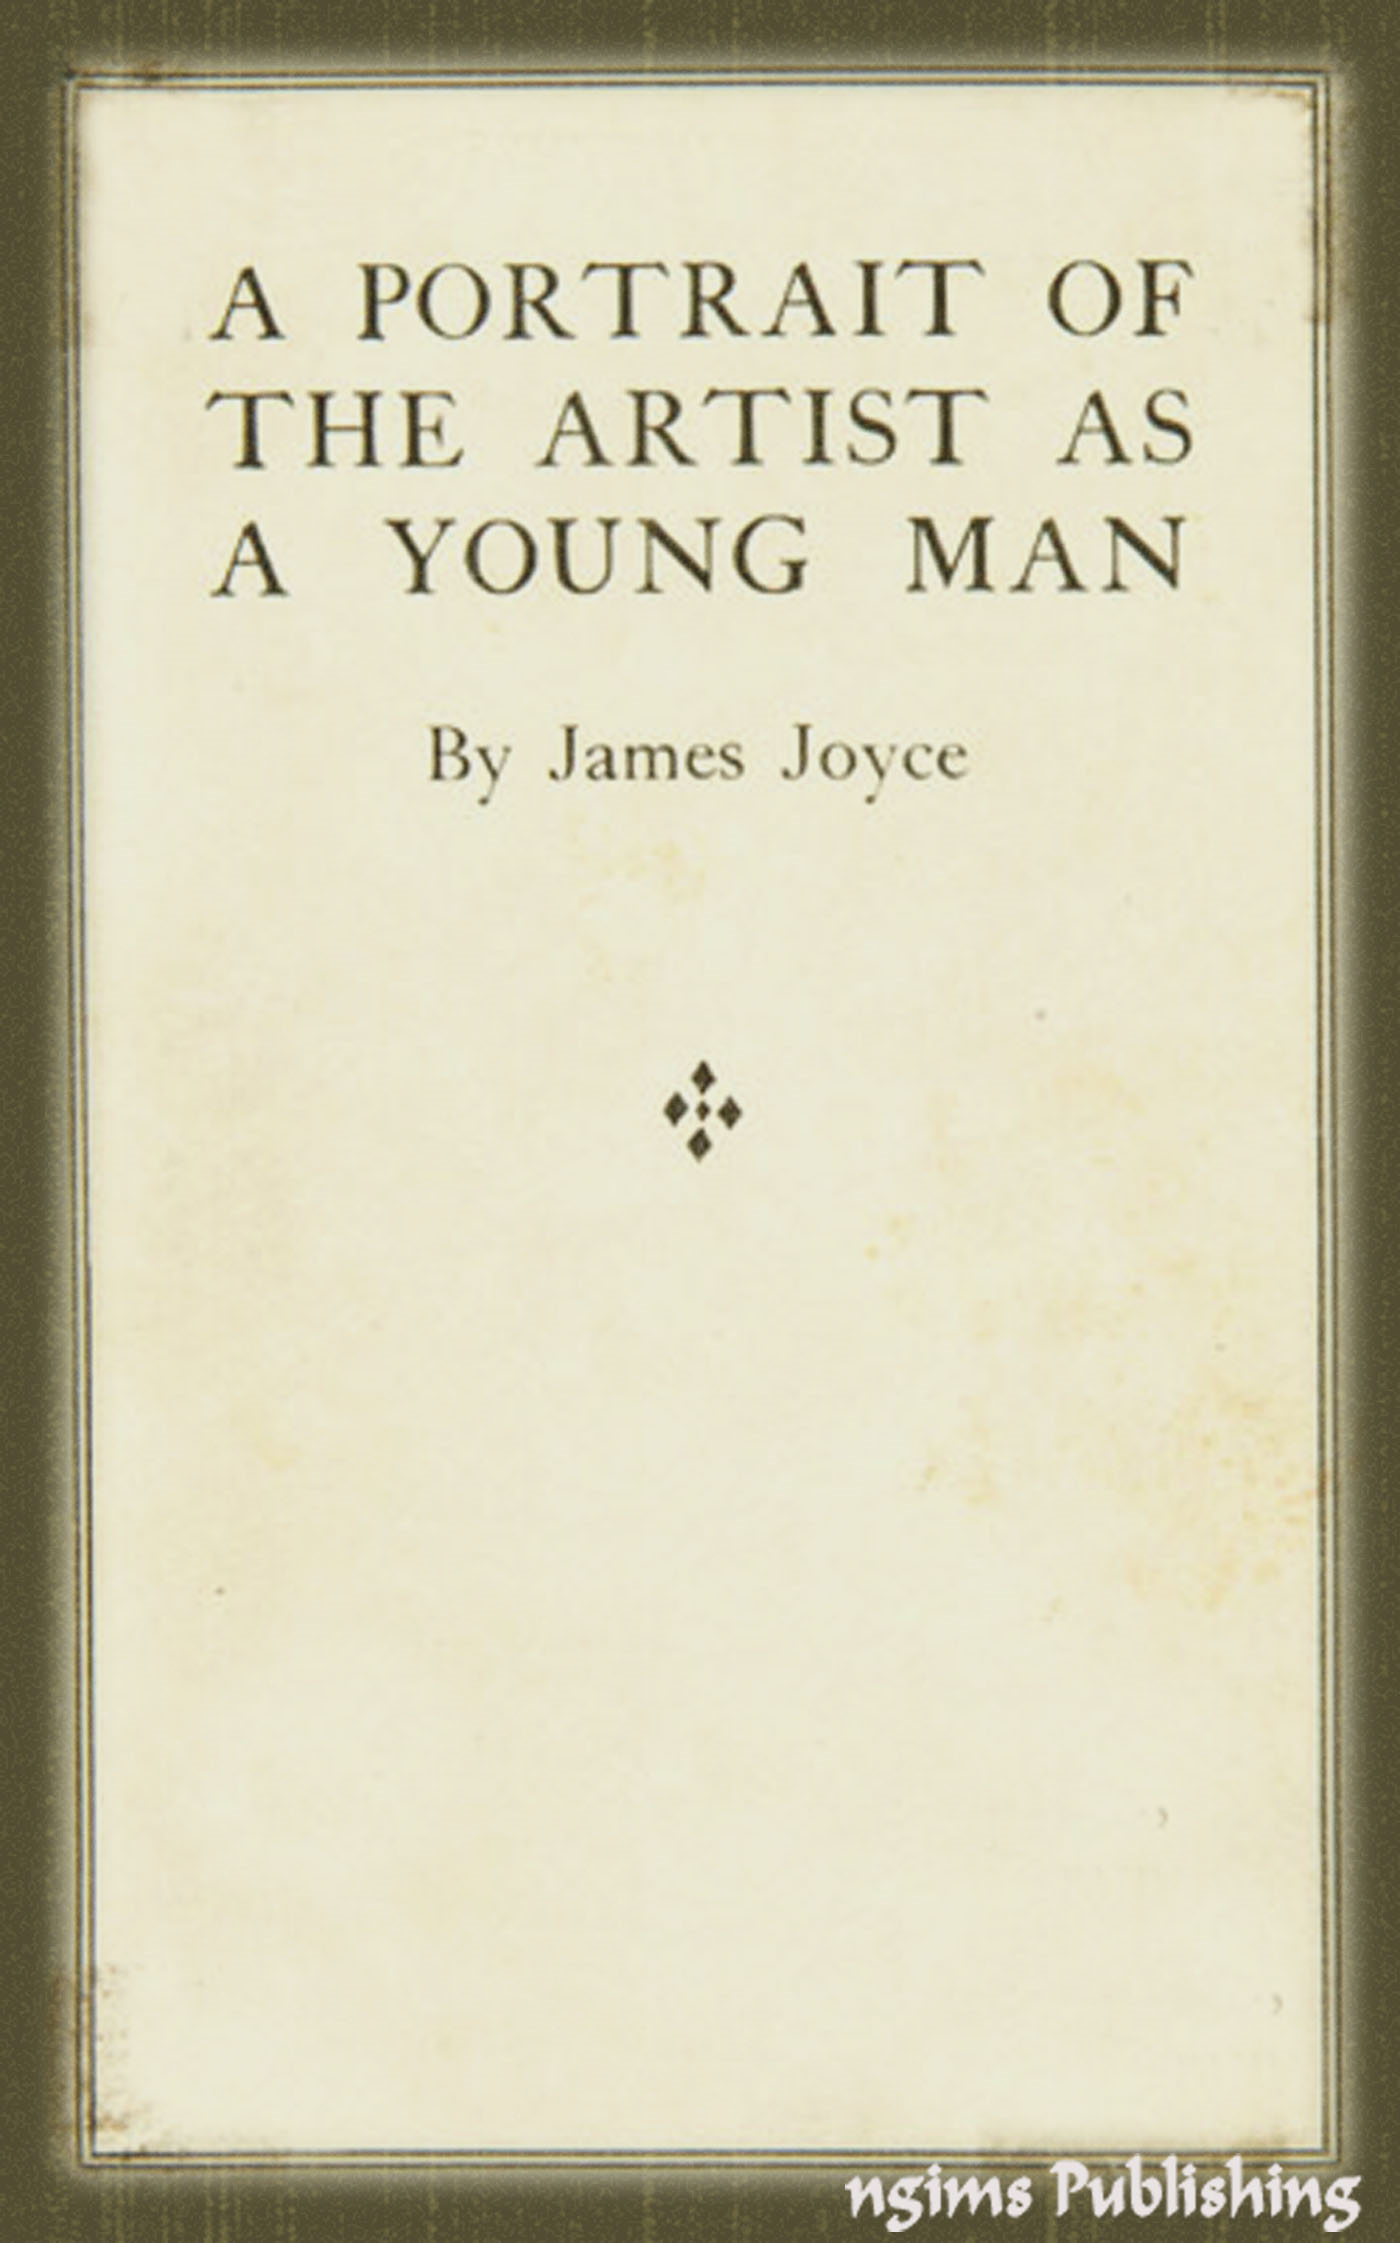 james joyce a portrait of the artist essay James joyce's a portrait of the artist as a young man is considered to be one of the finest works of literature of essay uk, a portrait of the artist as a young man.